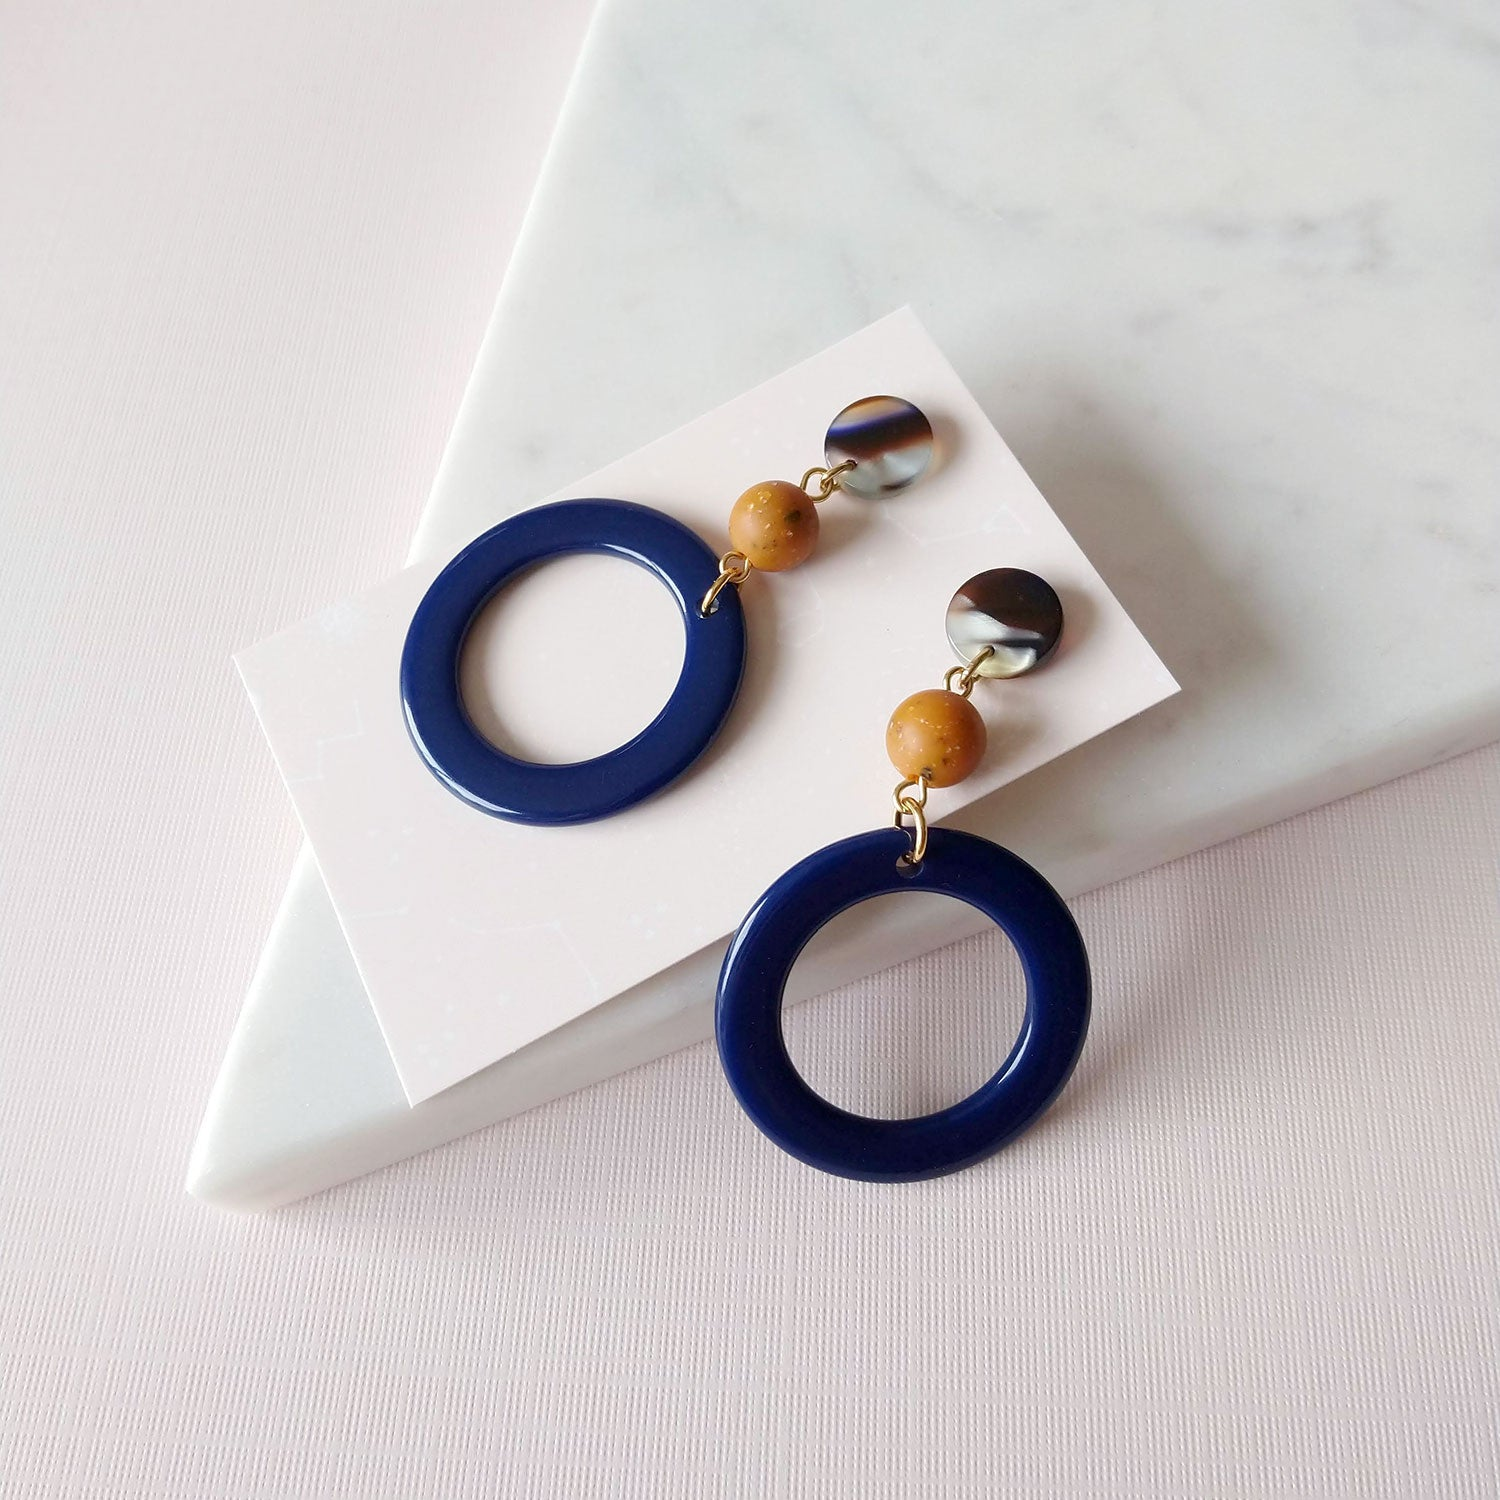 acetate earrings vintage hoops